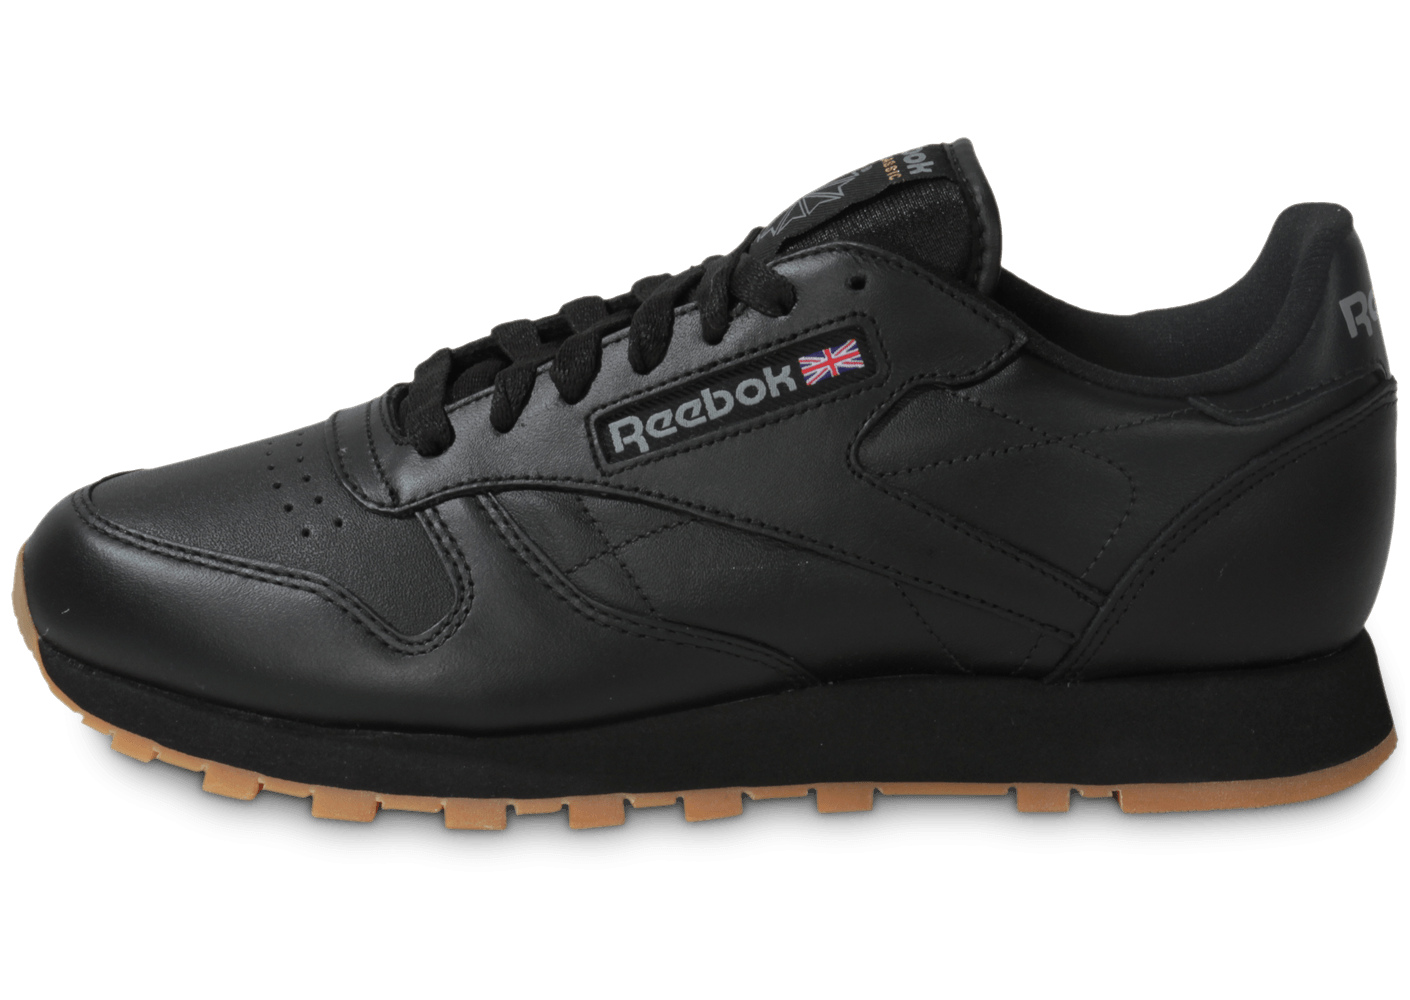 reebok classic leather noir gum chaussures homme chausport. Black Bedroom Furniture Sets. Home Design Ideas